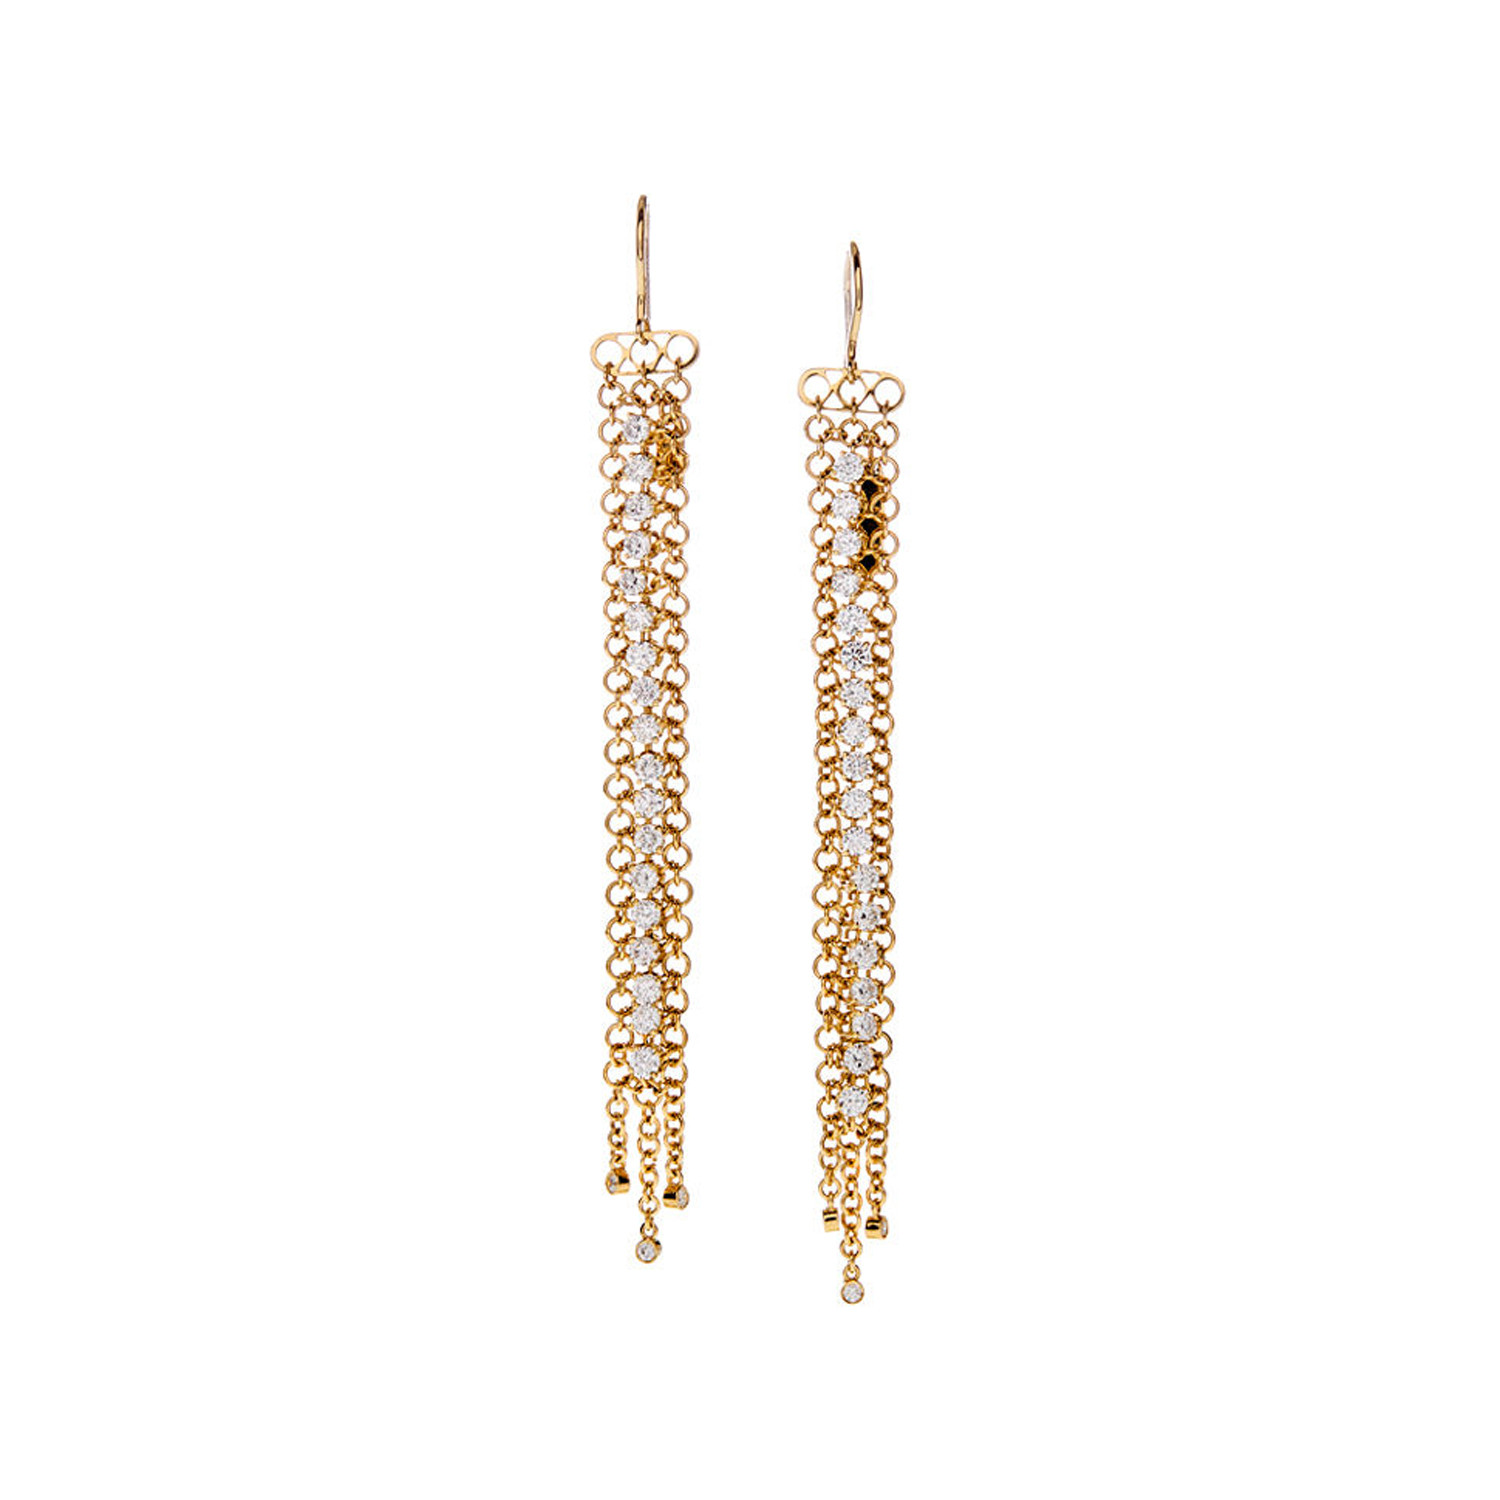 j swirl z jewelry sale pierino at id for earrings frascarolo on italian gold clip